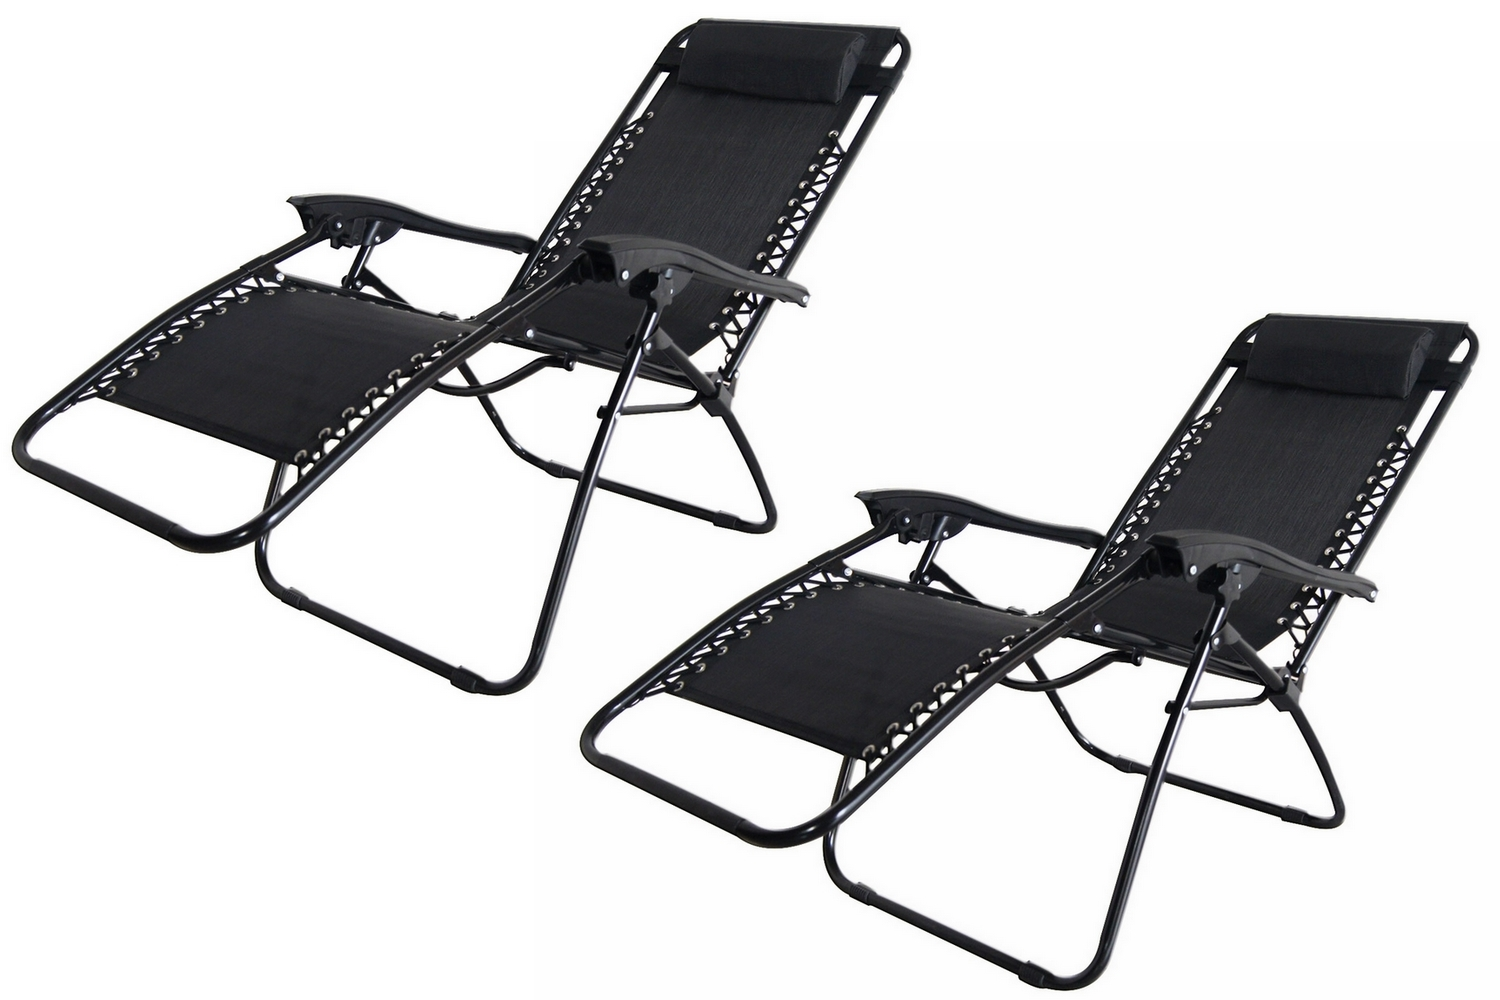 2x Palm Springs Zero Gravity Chairs Lounge/Outdoor Yard